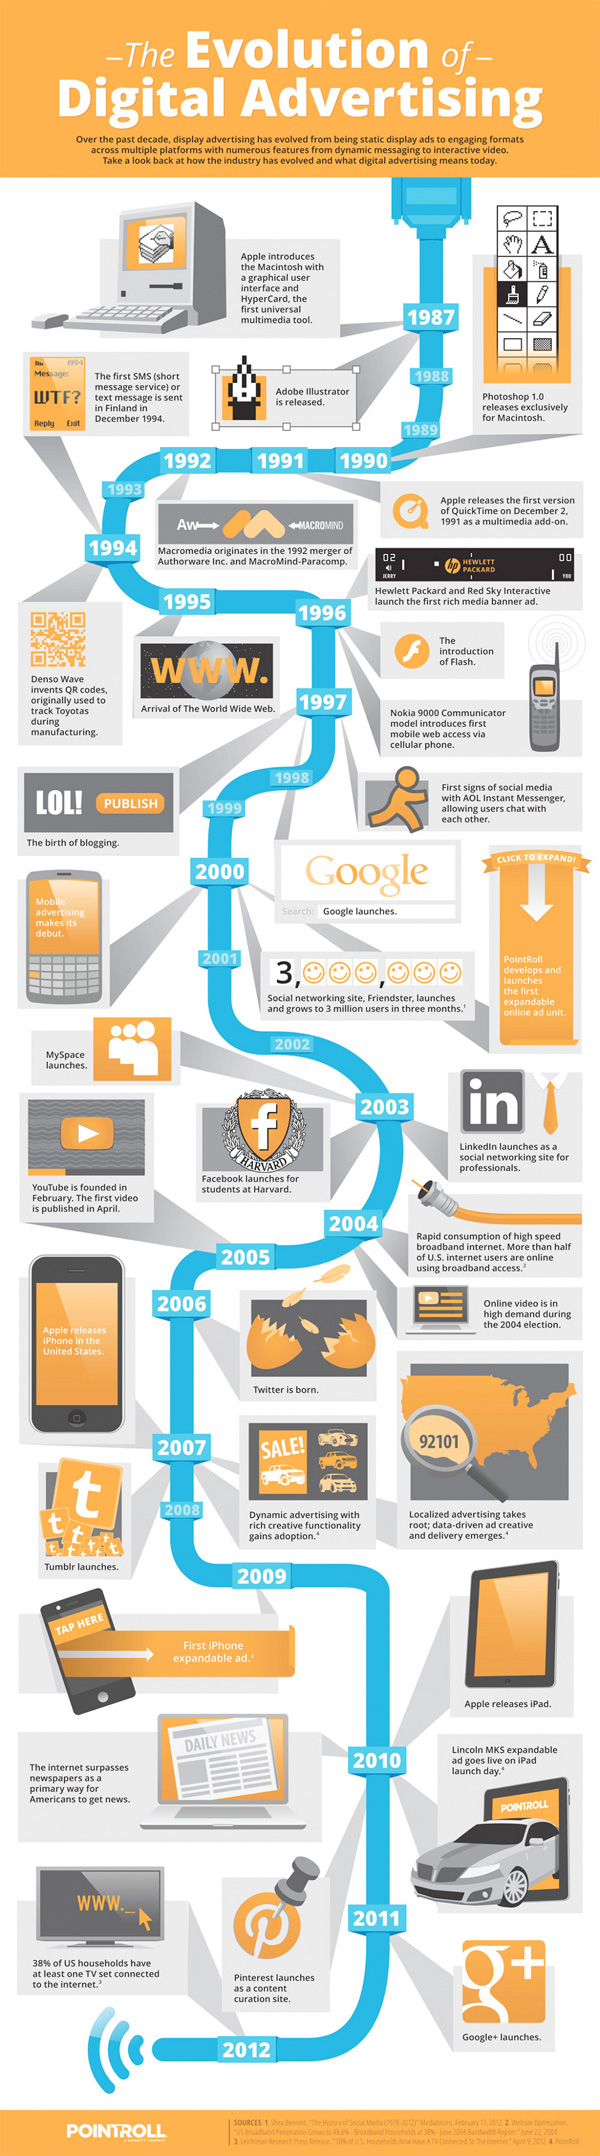 Evolution of Digital Advertising [INFOGRAPHIC]